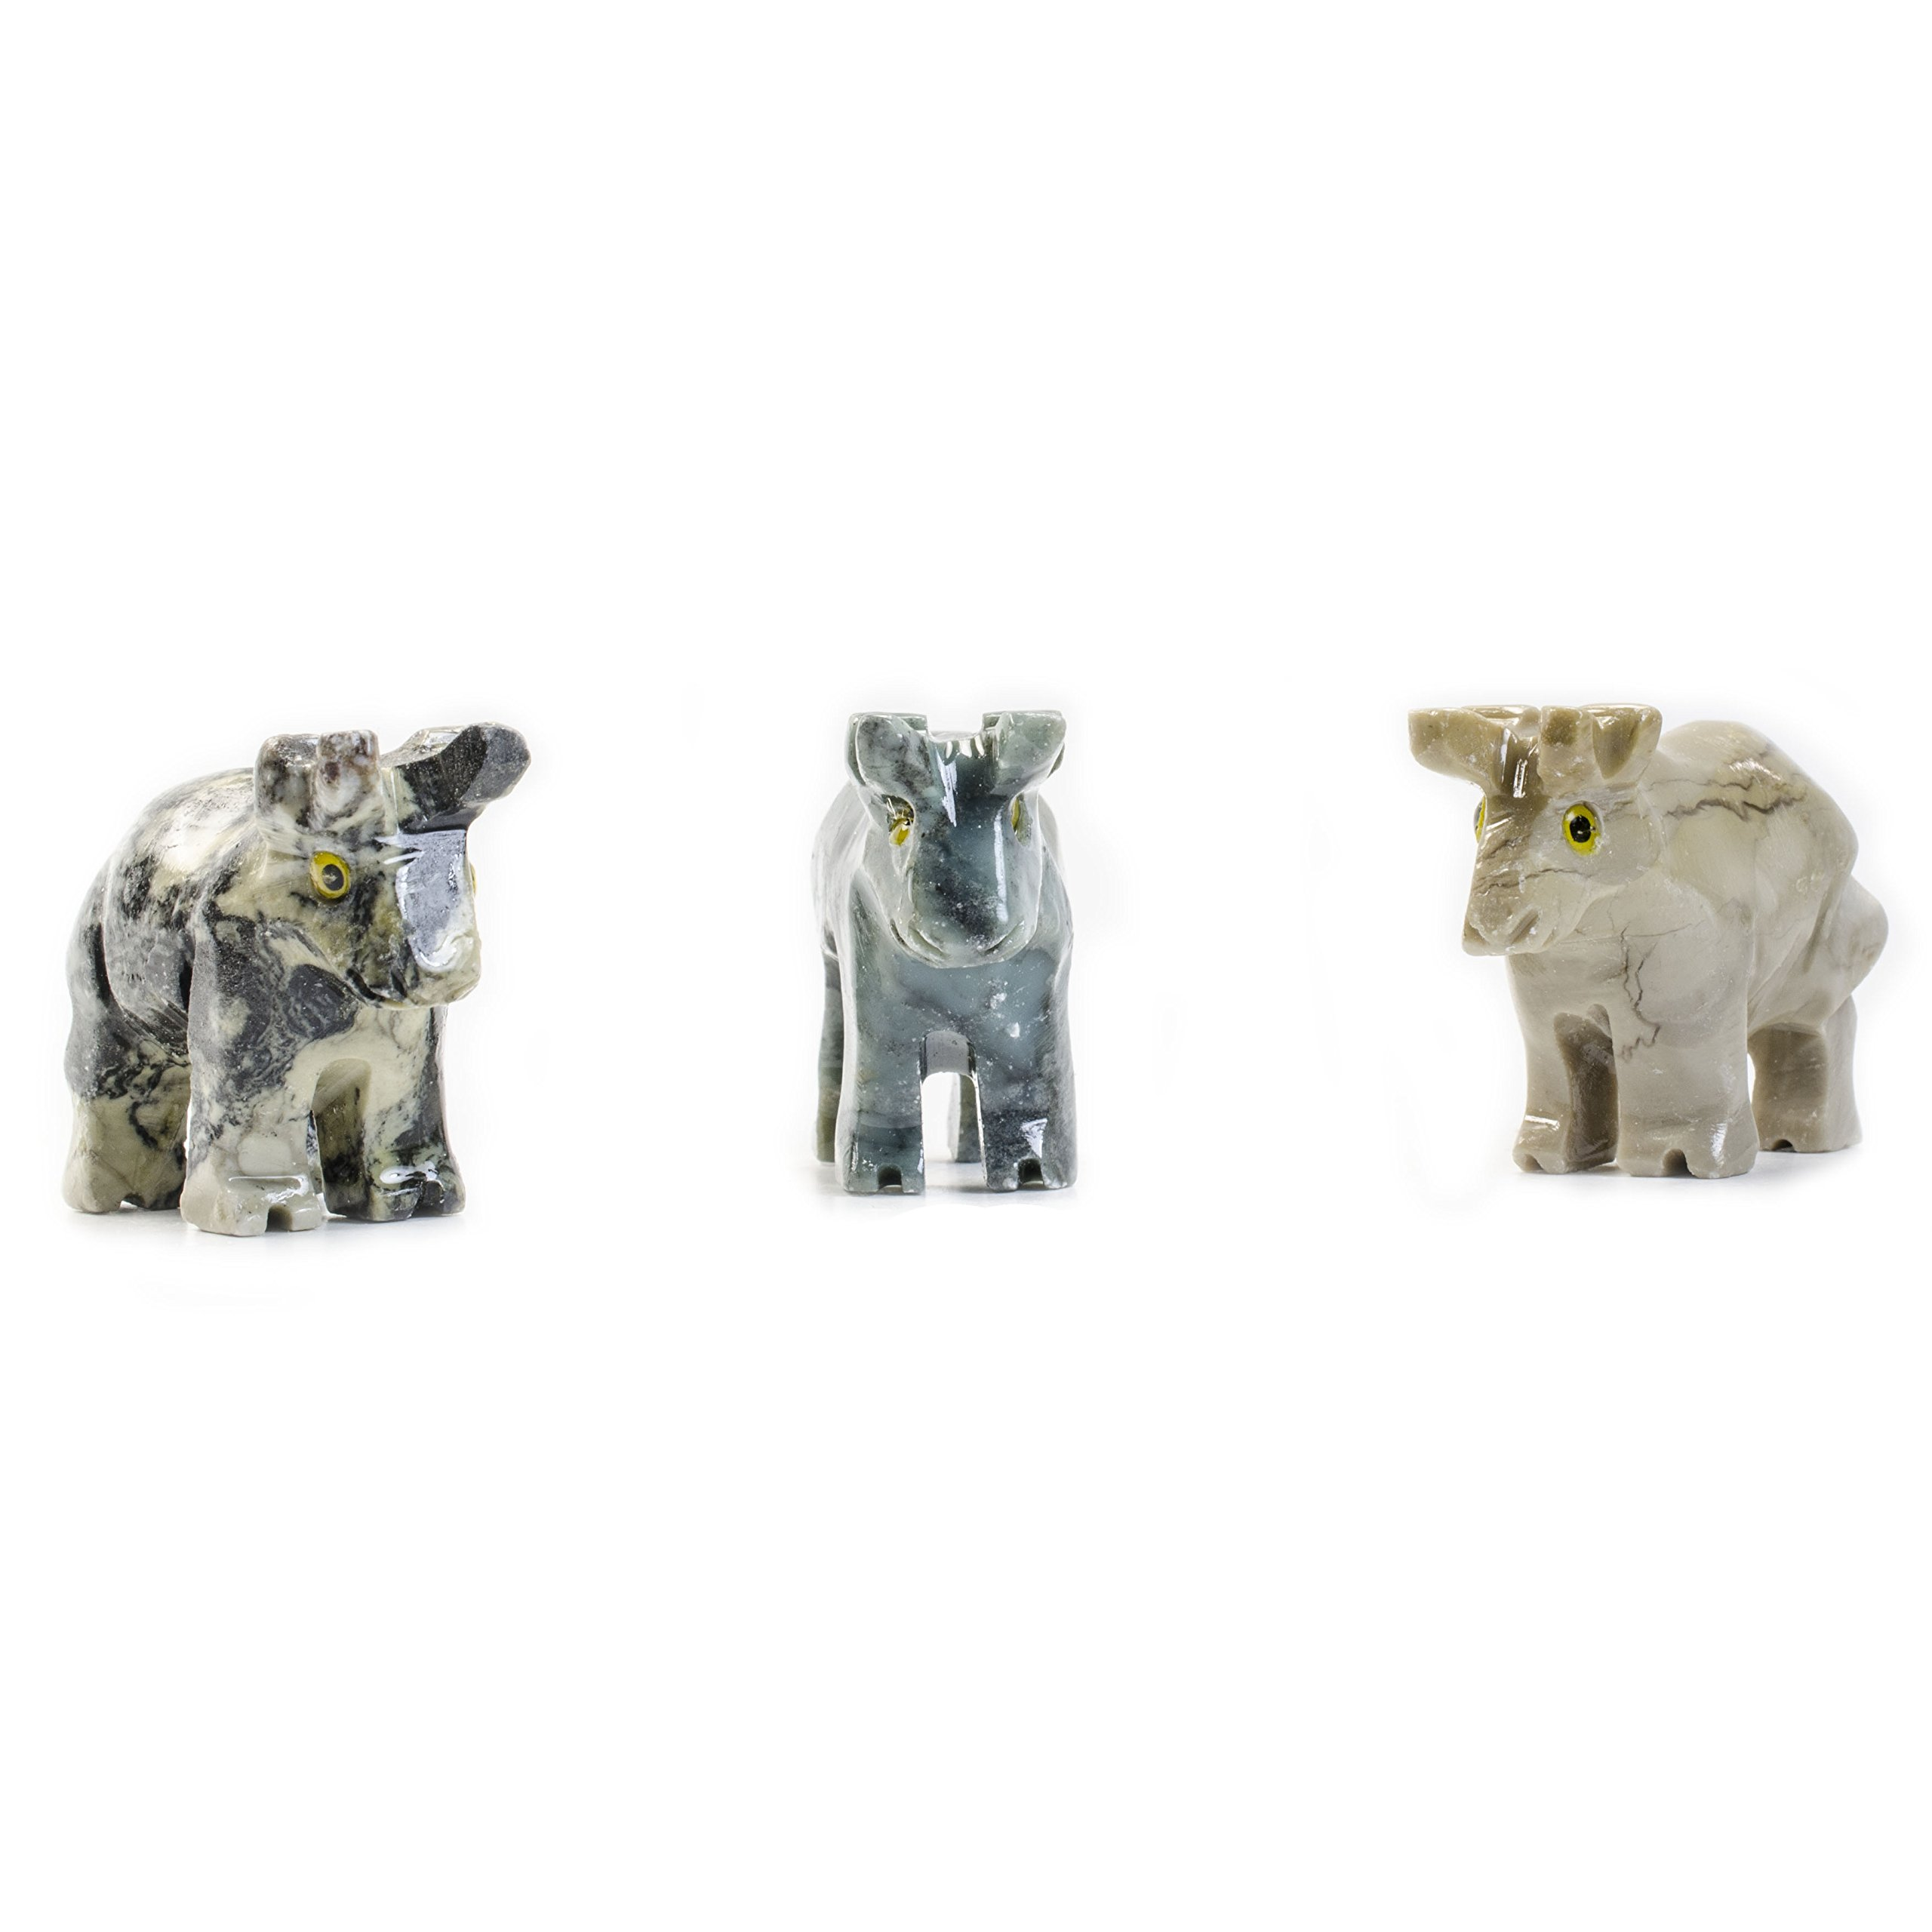 Fantasia Creations: 30 pcs Bull Soapstone Animal Figurine - Hand Carved by Fantasia's Master Artisans for Party Favors, Collecting, Wire Wrapping, Gifts and More!